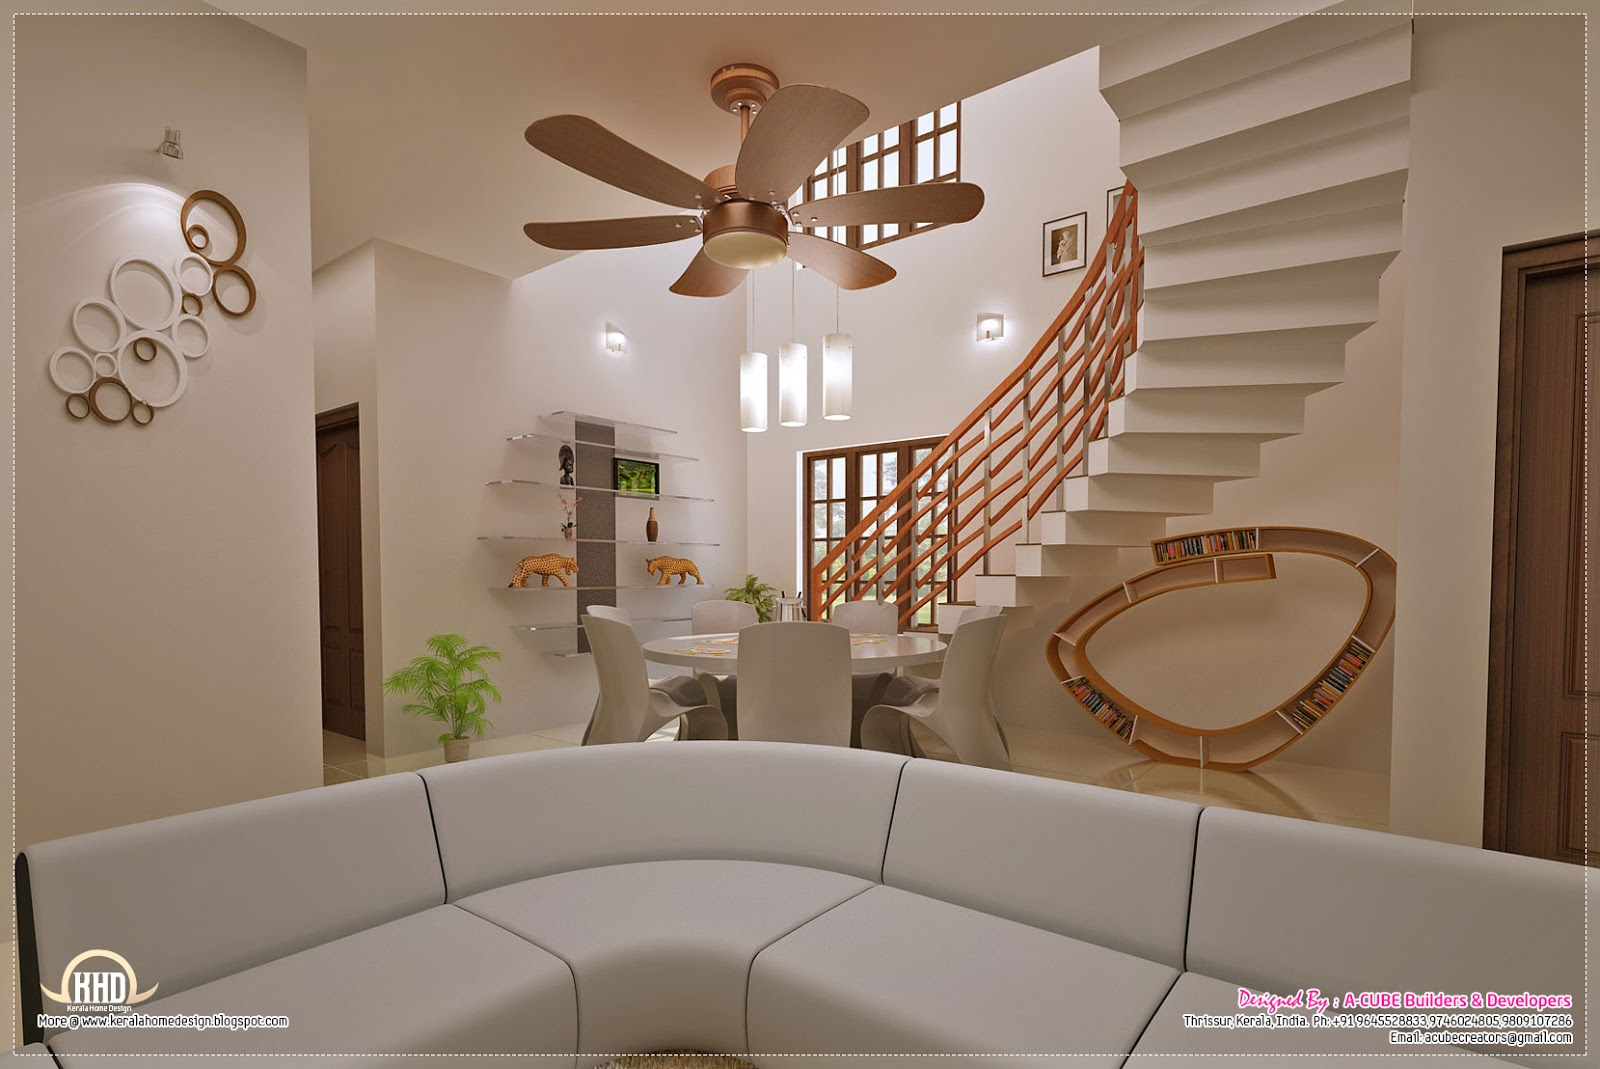 Awesome interior decoration ideas home kerala plans for Home interior ideas